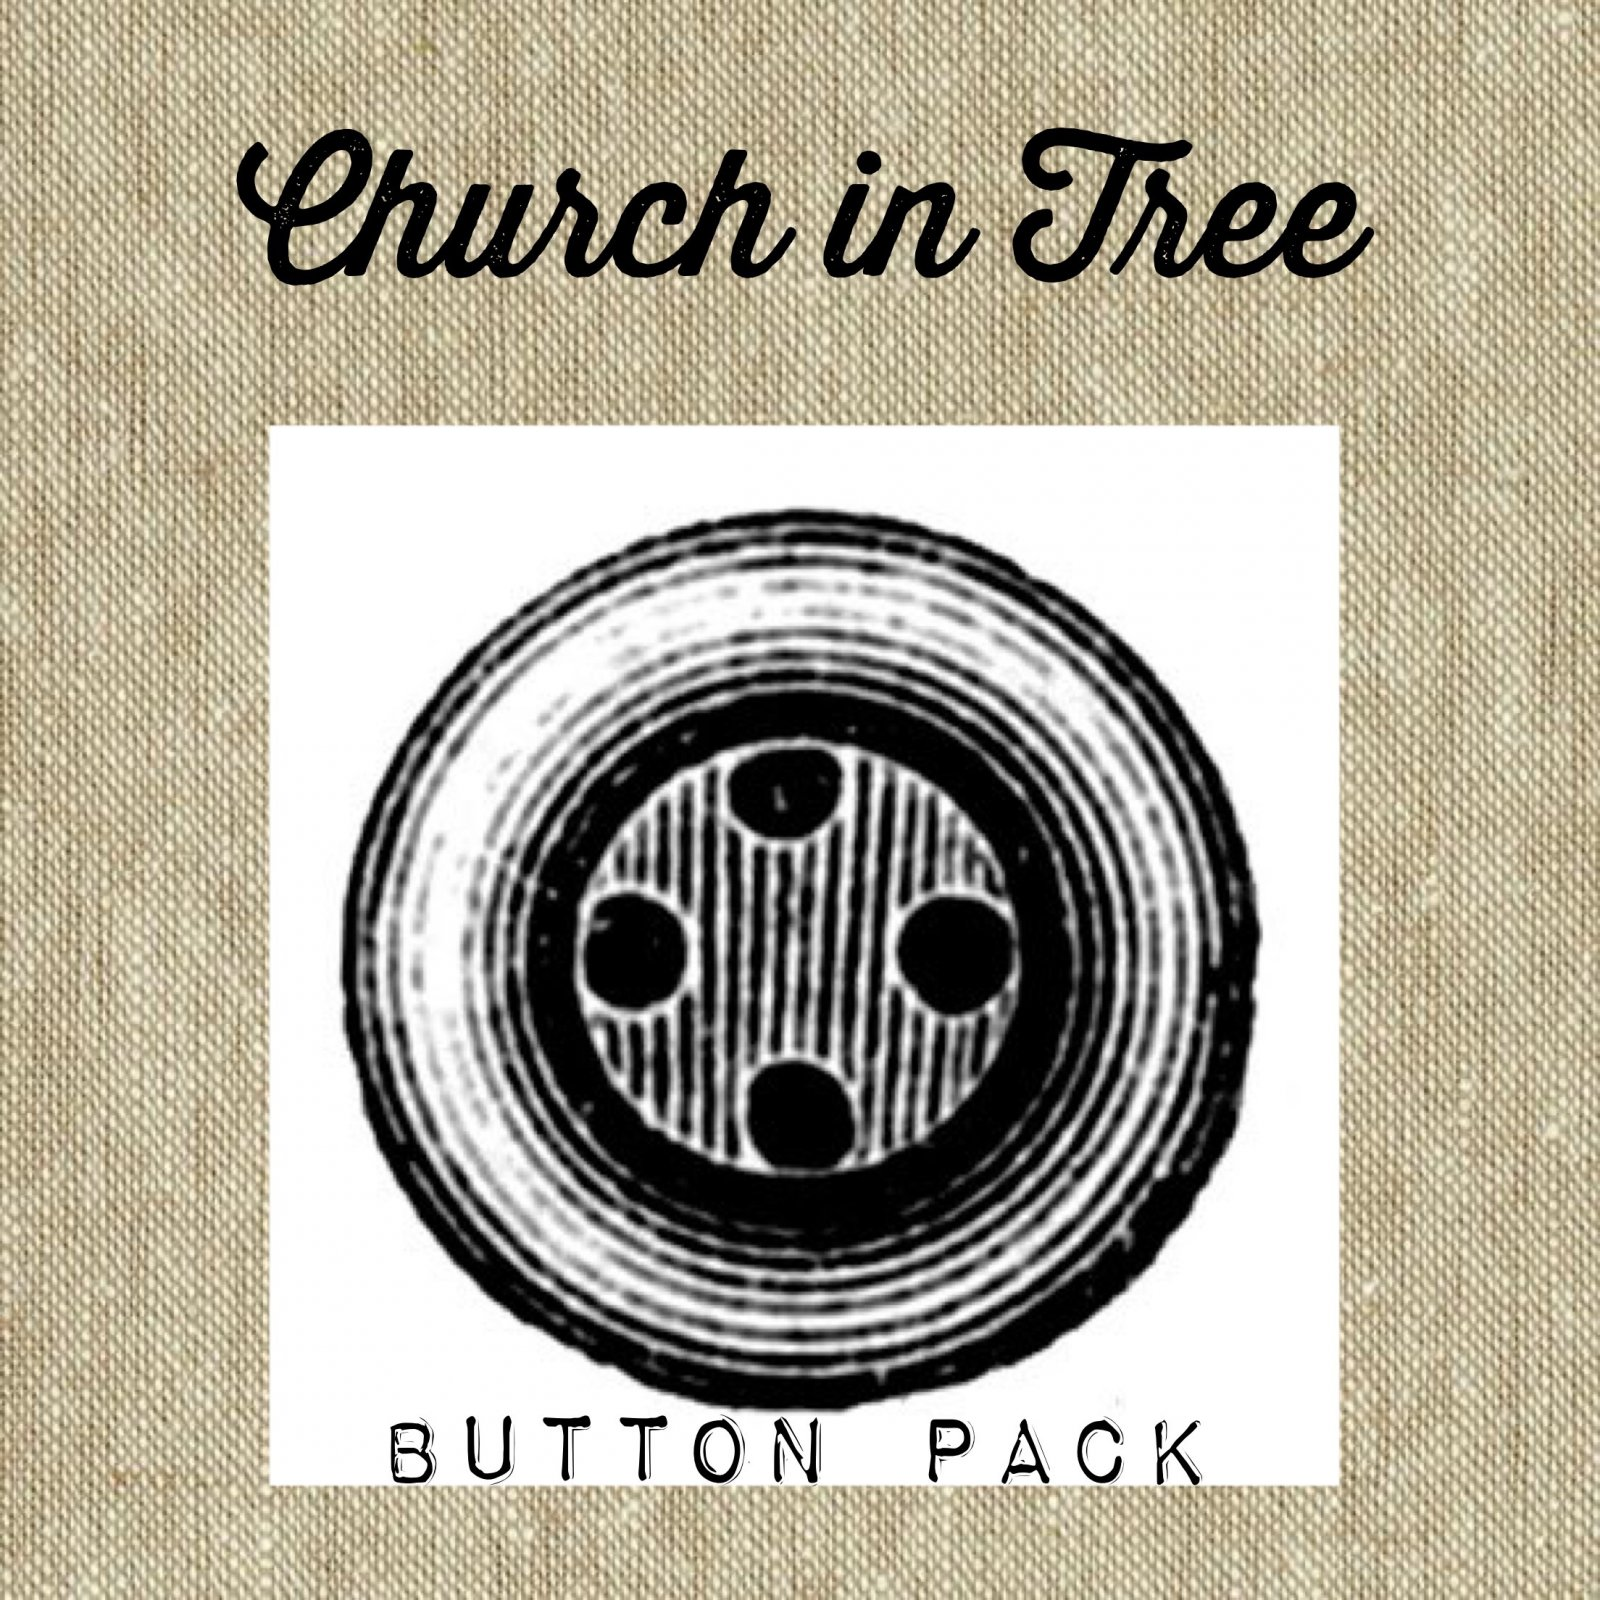 Vintage Church in Tree * Button Pack